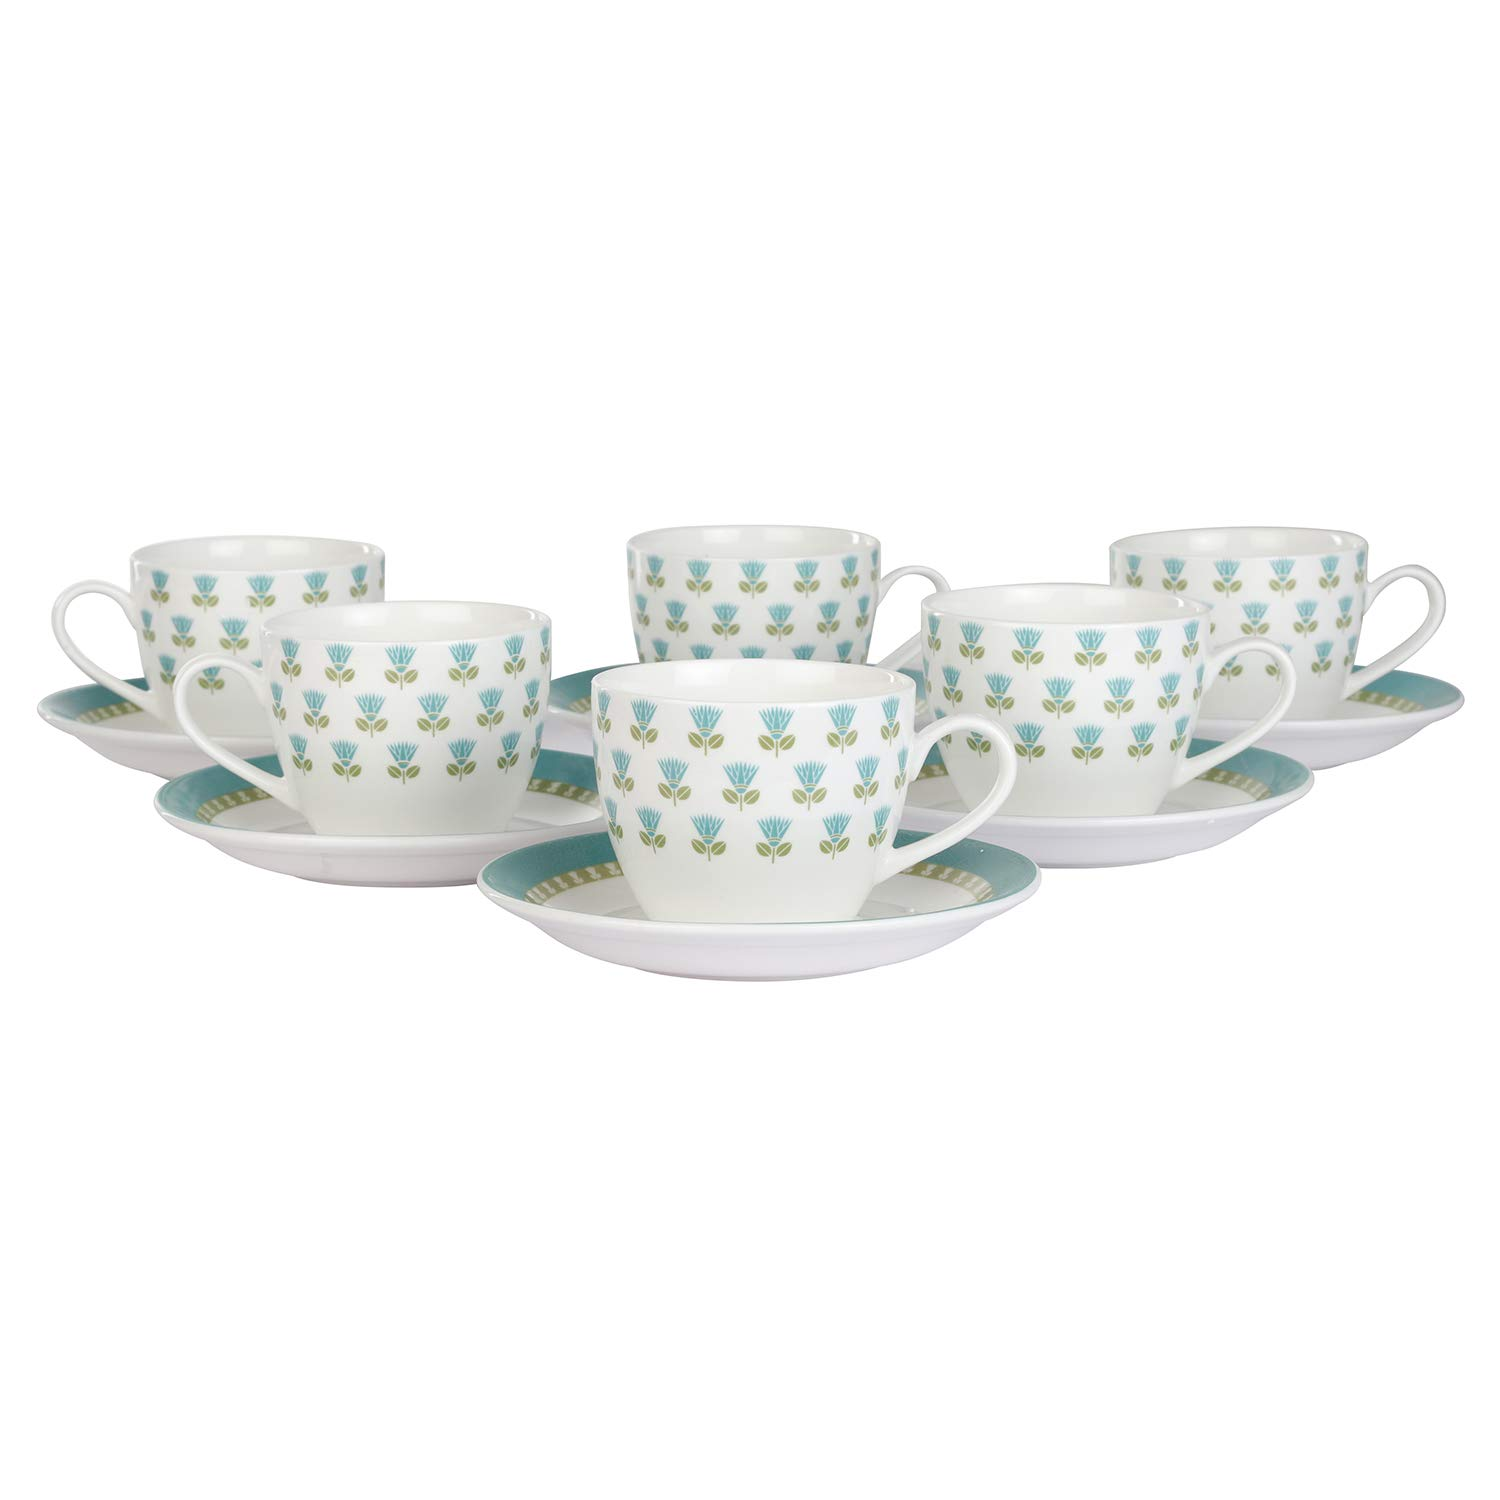 Indian Ceramic Rich Orchid Tea Cups & Saucers Set of 6 Cup and 6 Saucer - 200 ML